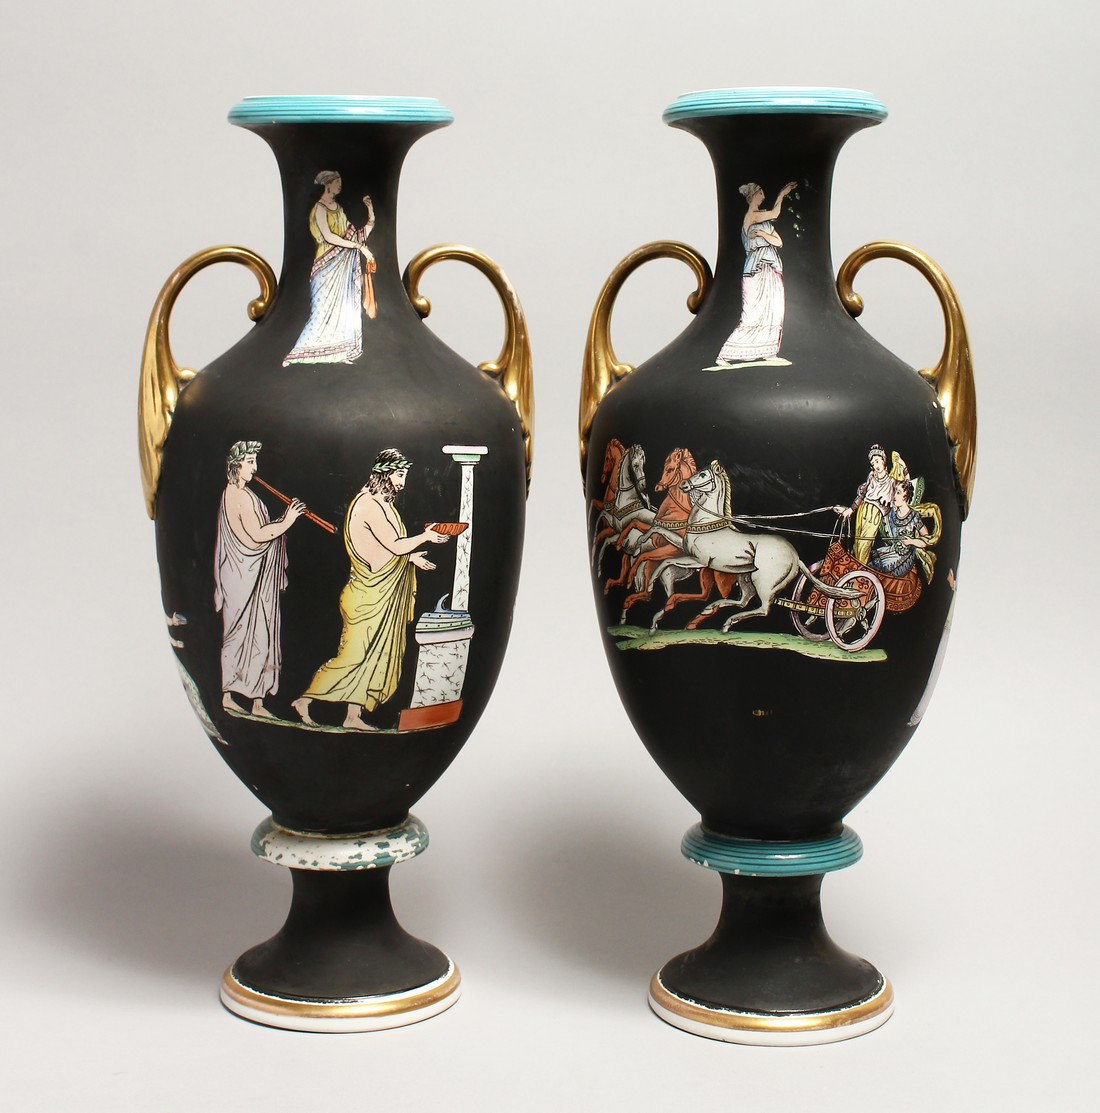 A PAIR OF CLASSICAL TWO HANDLED VASES with Greek figures 16ins high.